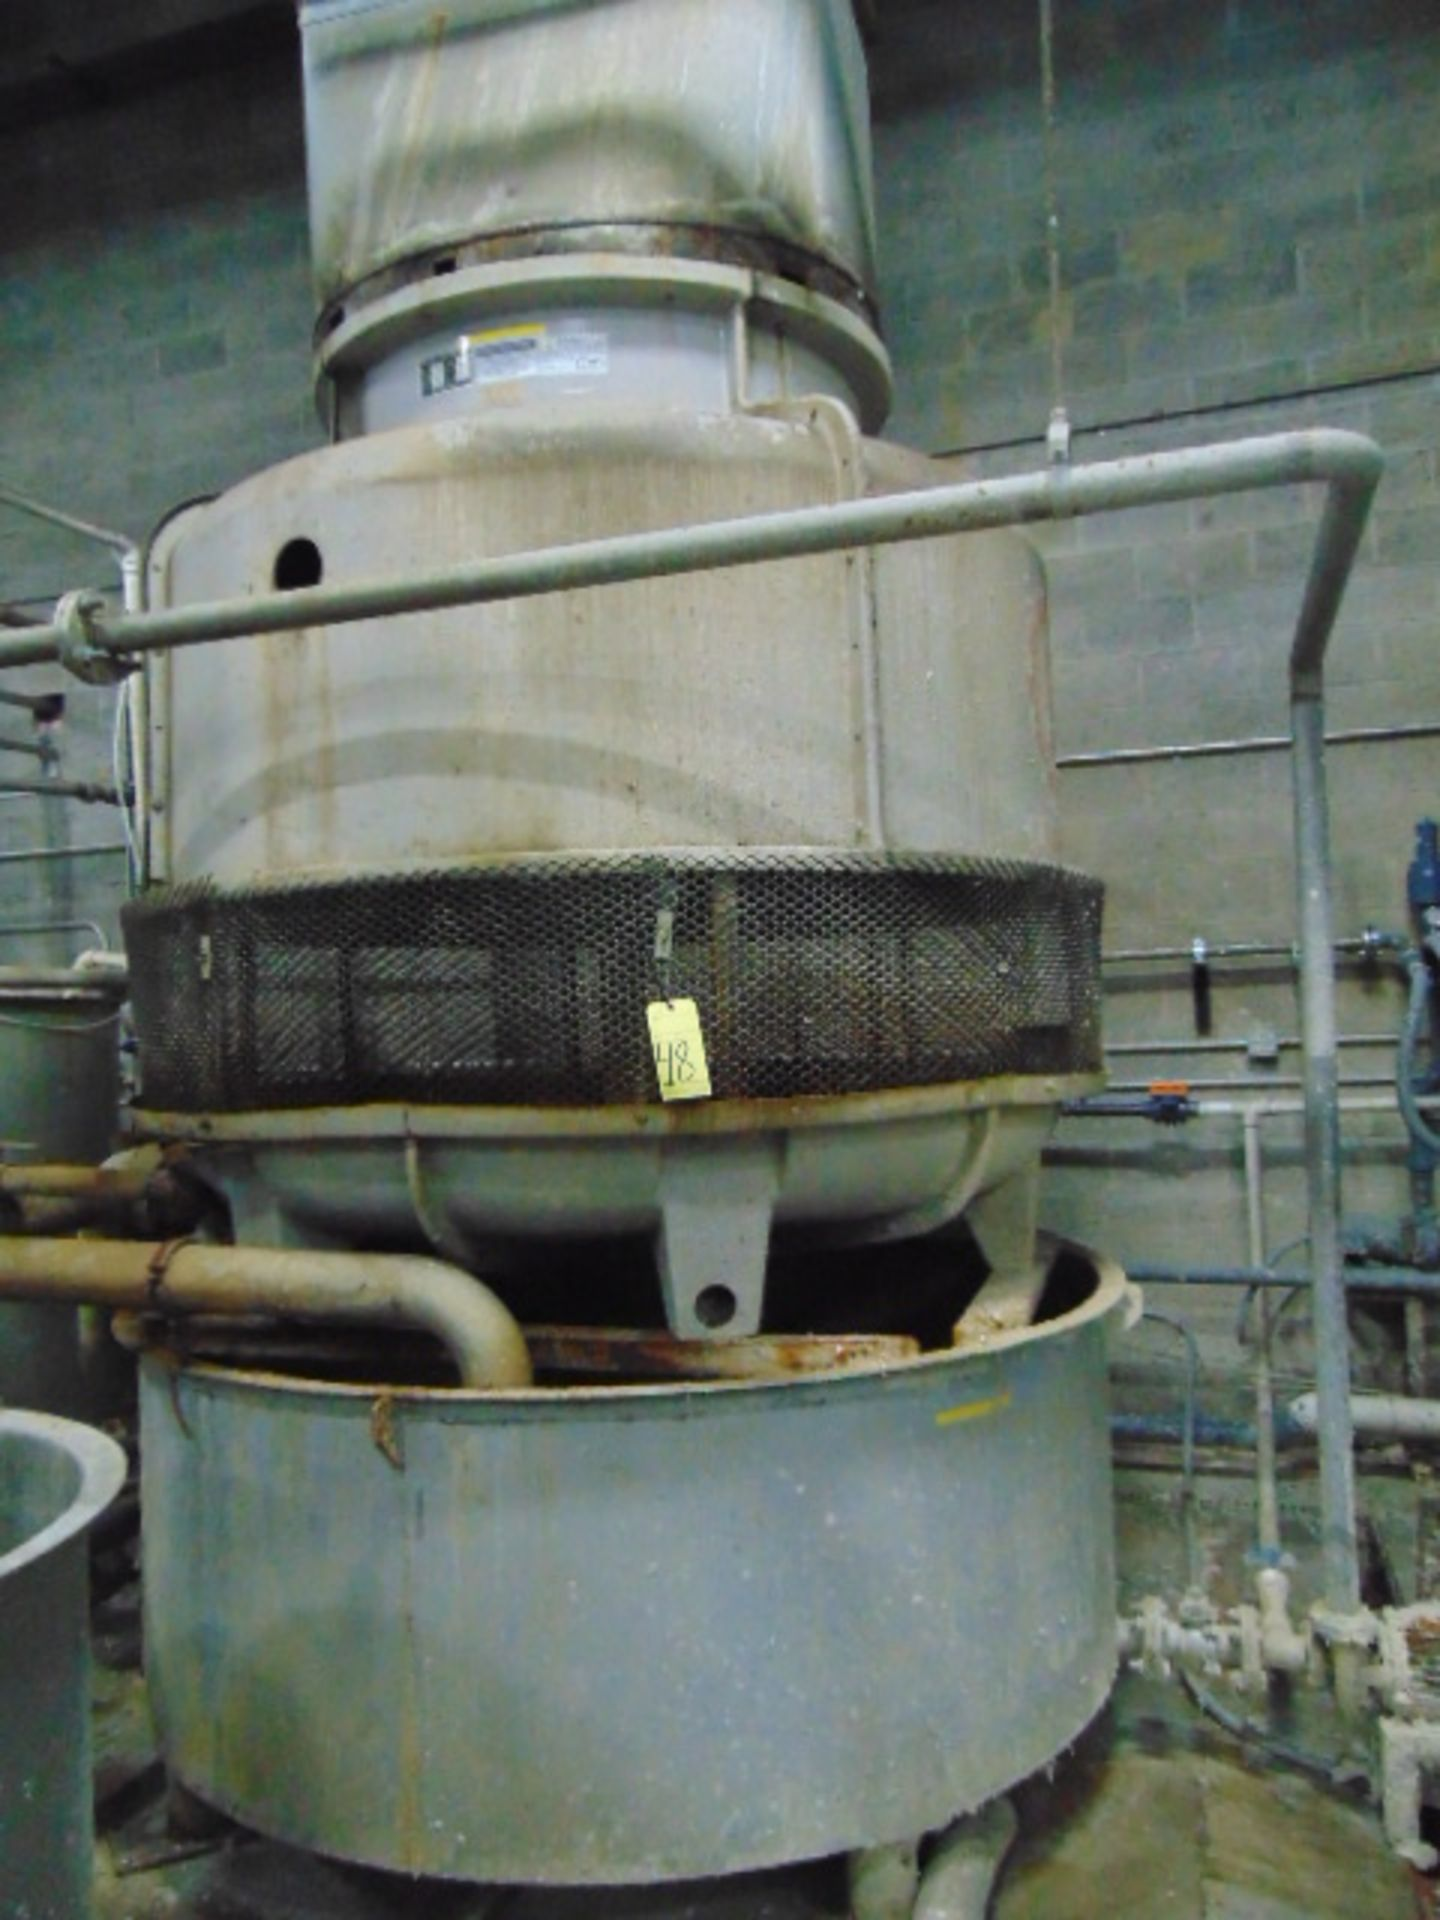 COOLING TOWER, LIANG CHI MDL. LBC-150